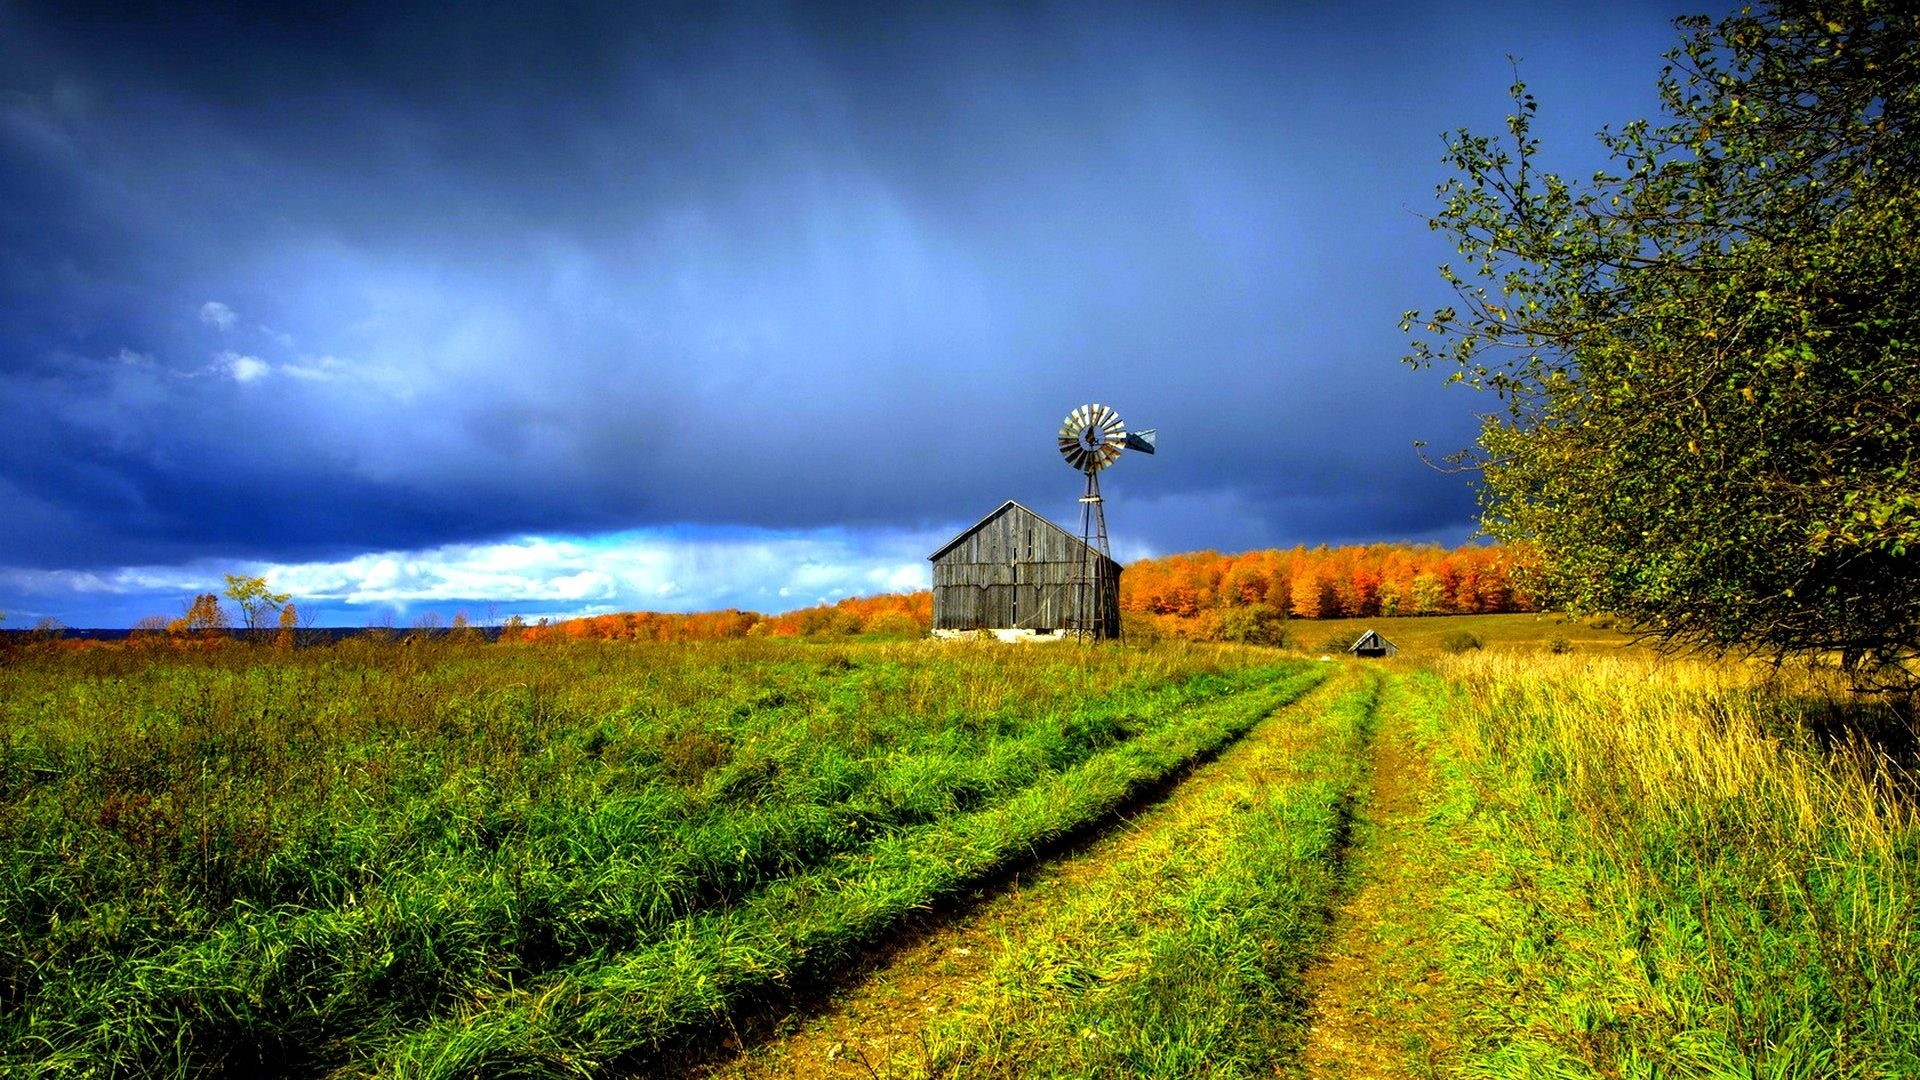 Rural Scene Wallpapers (44+ background pictures)